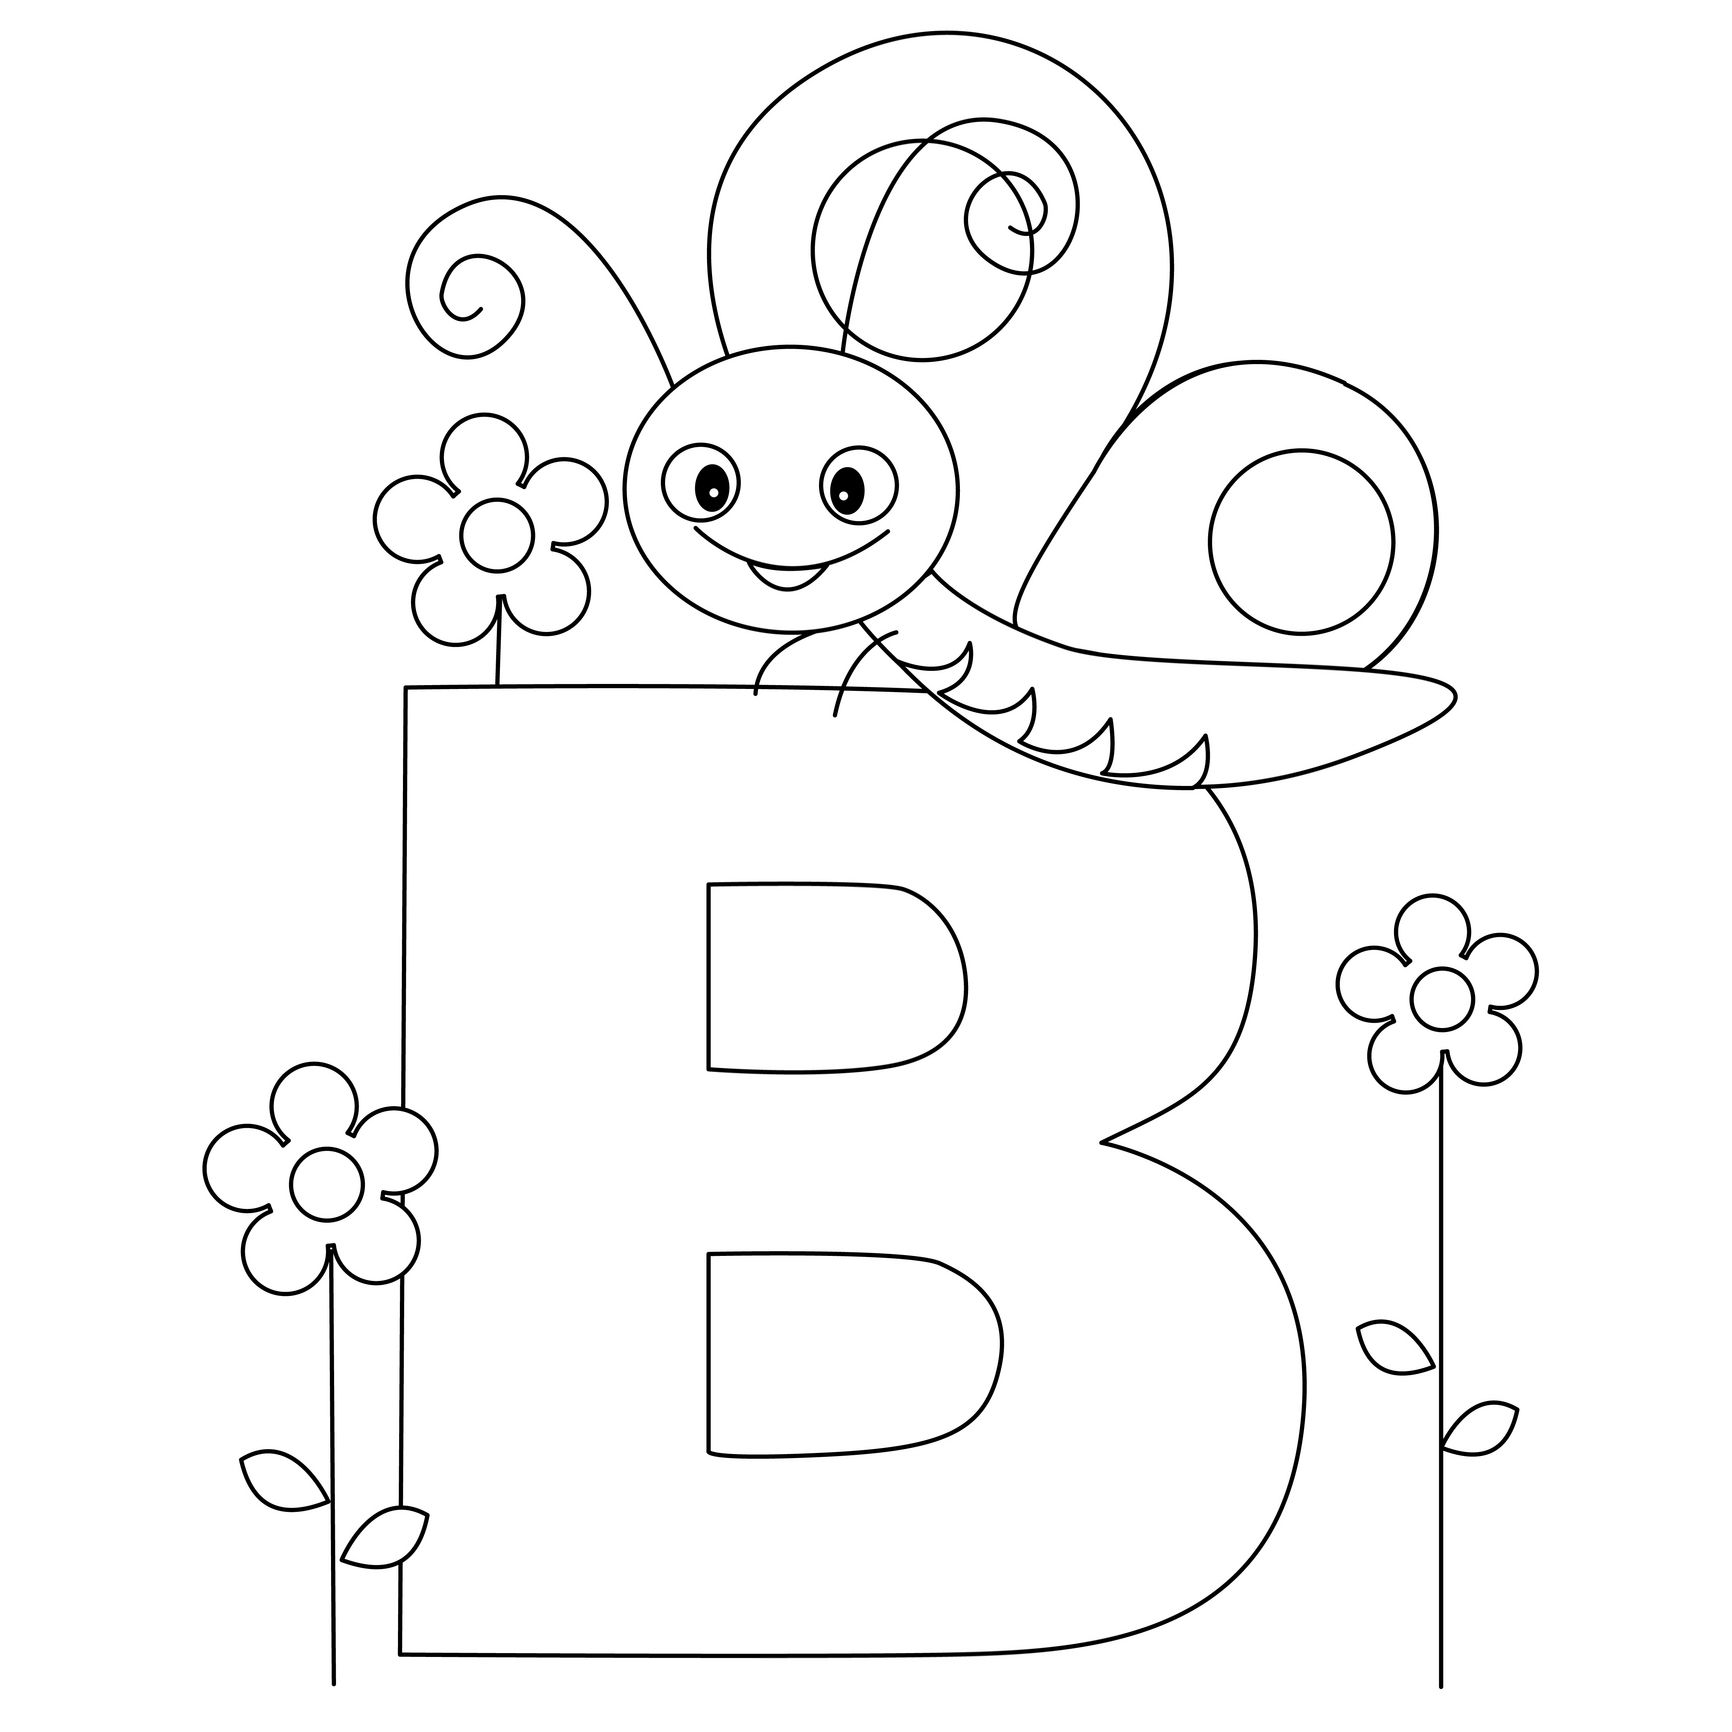 b words coloring pages - photo#31